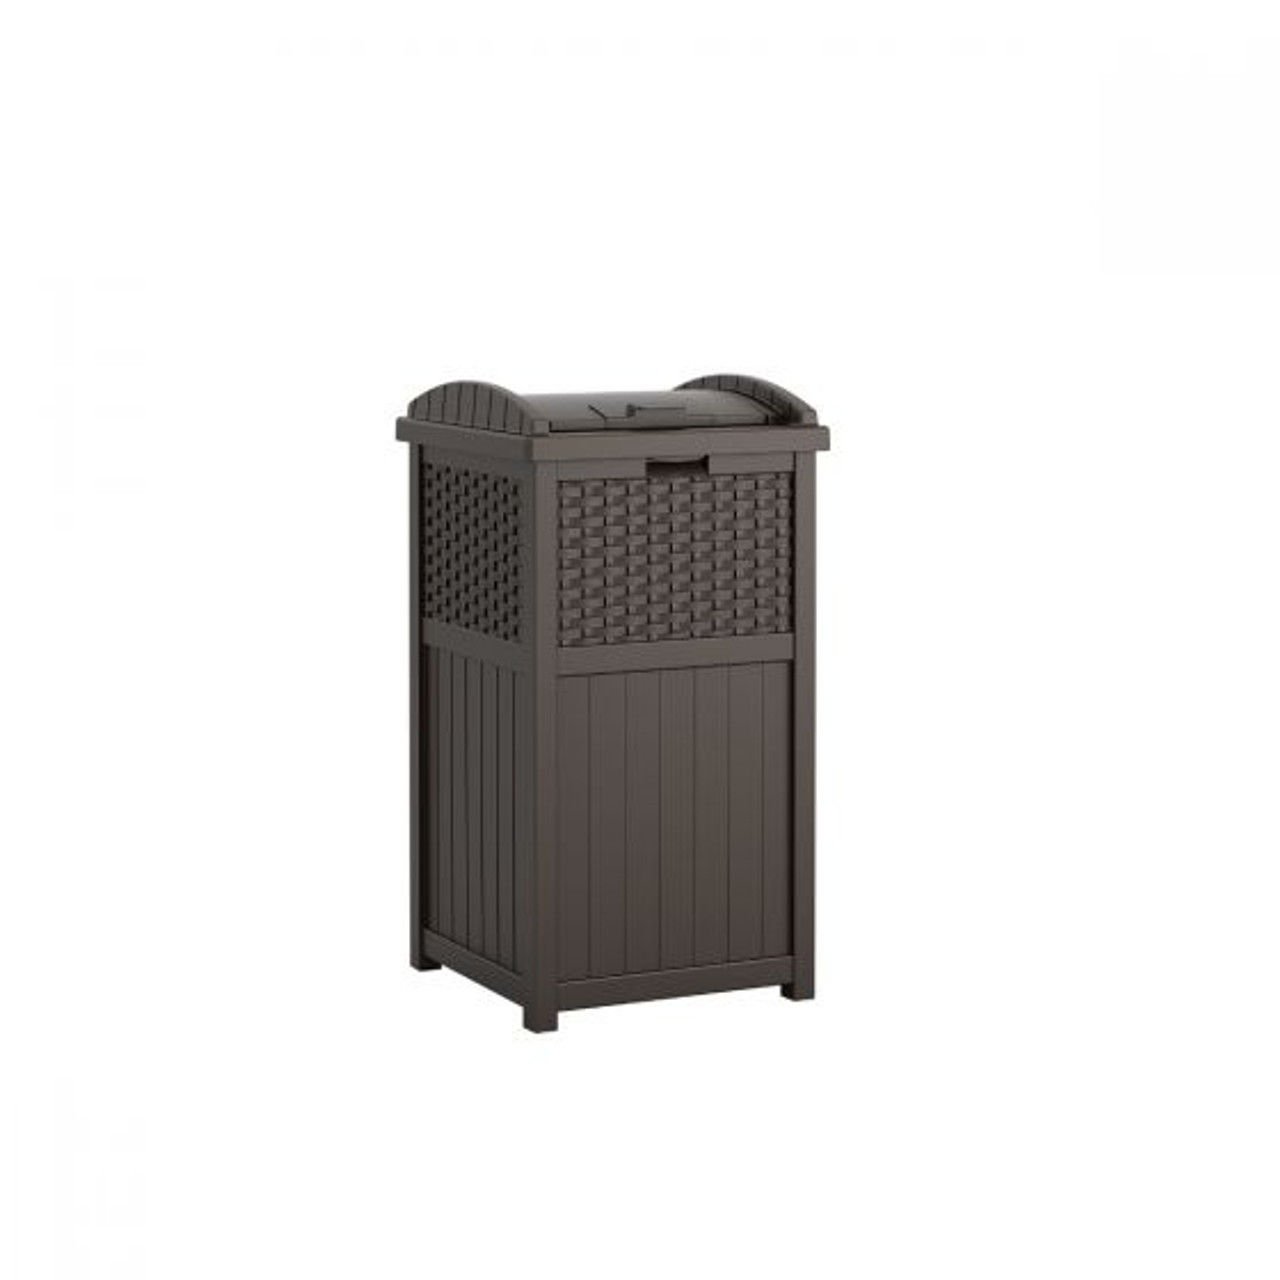 wicker java trash can ghw1732 for deck or patio